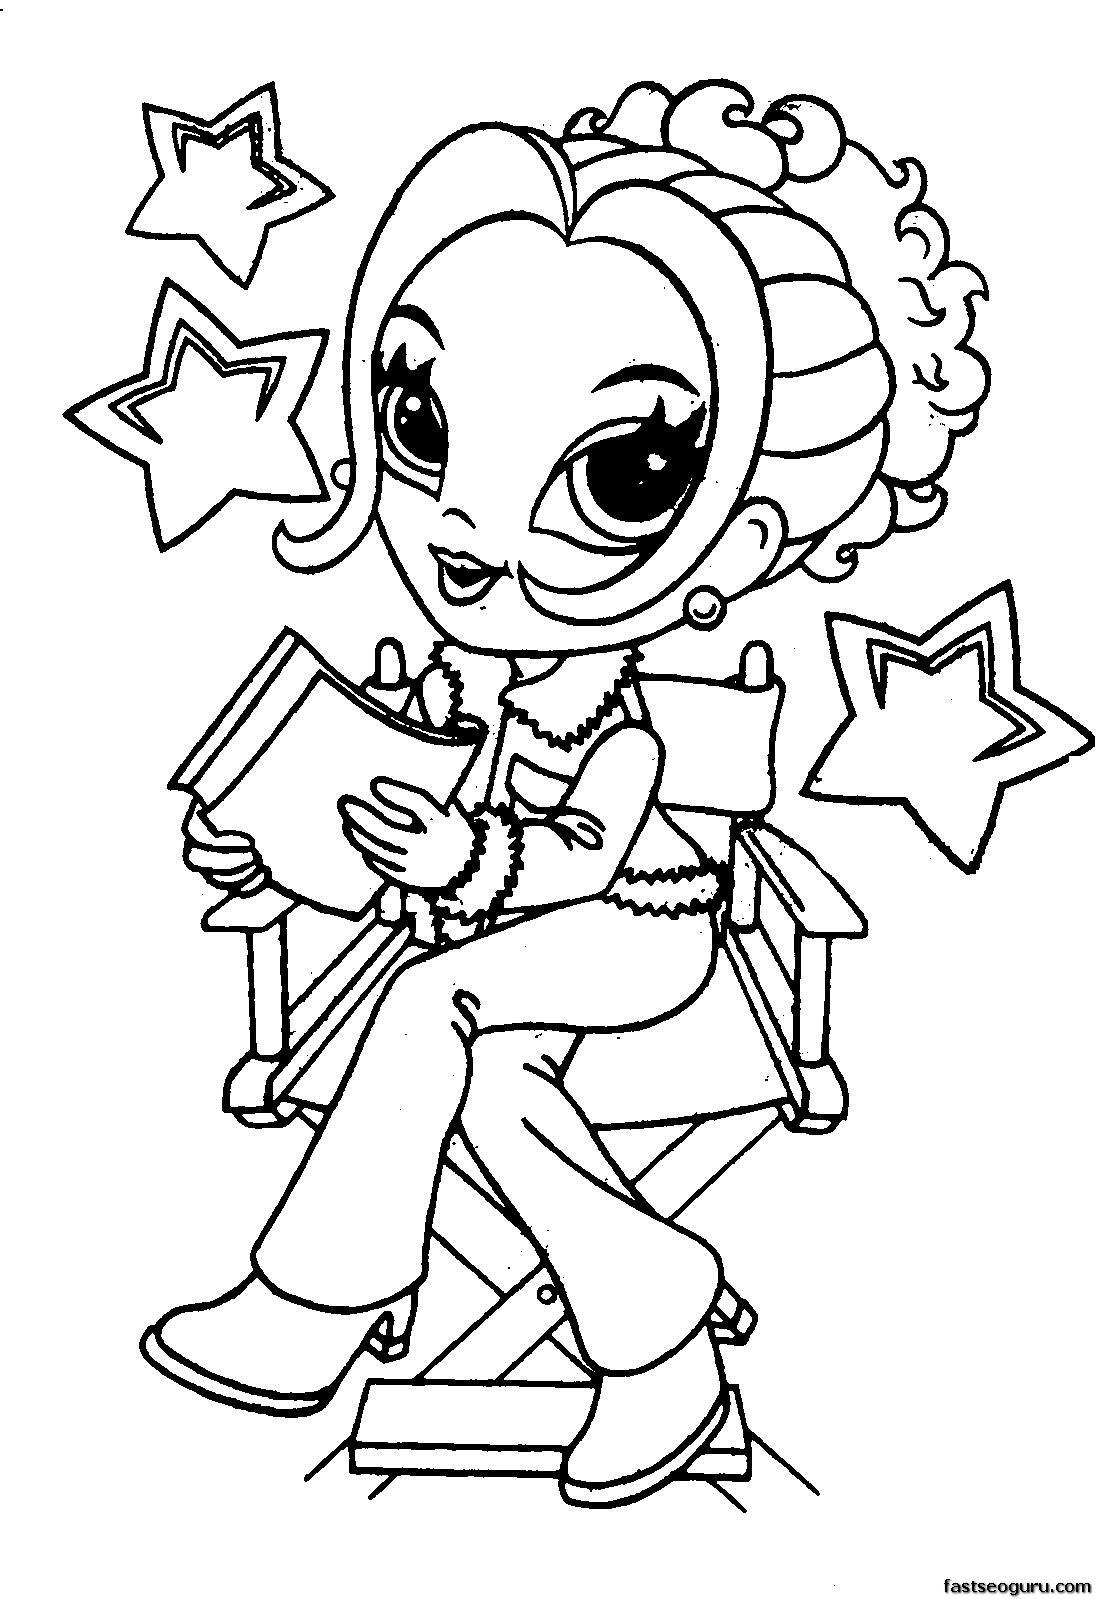 Coloring pages for girls 10 and up only coloring pages for Girls coloring pages to print